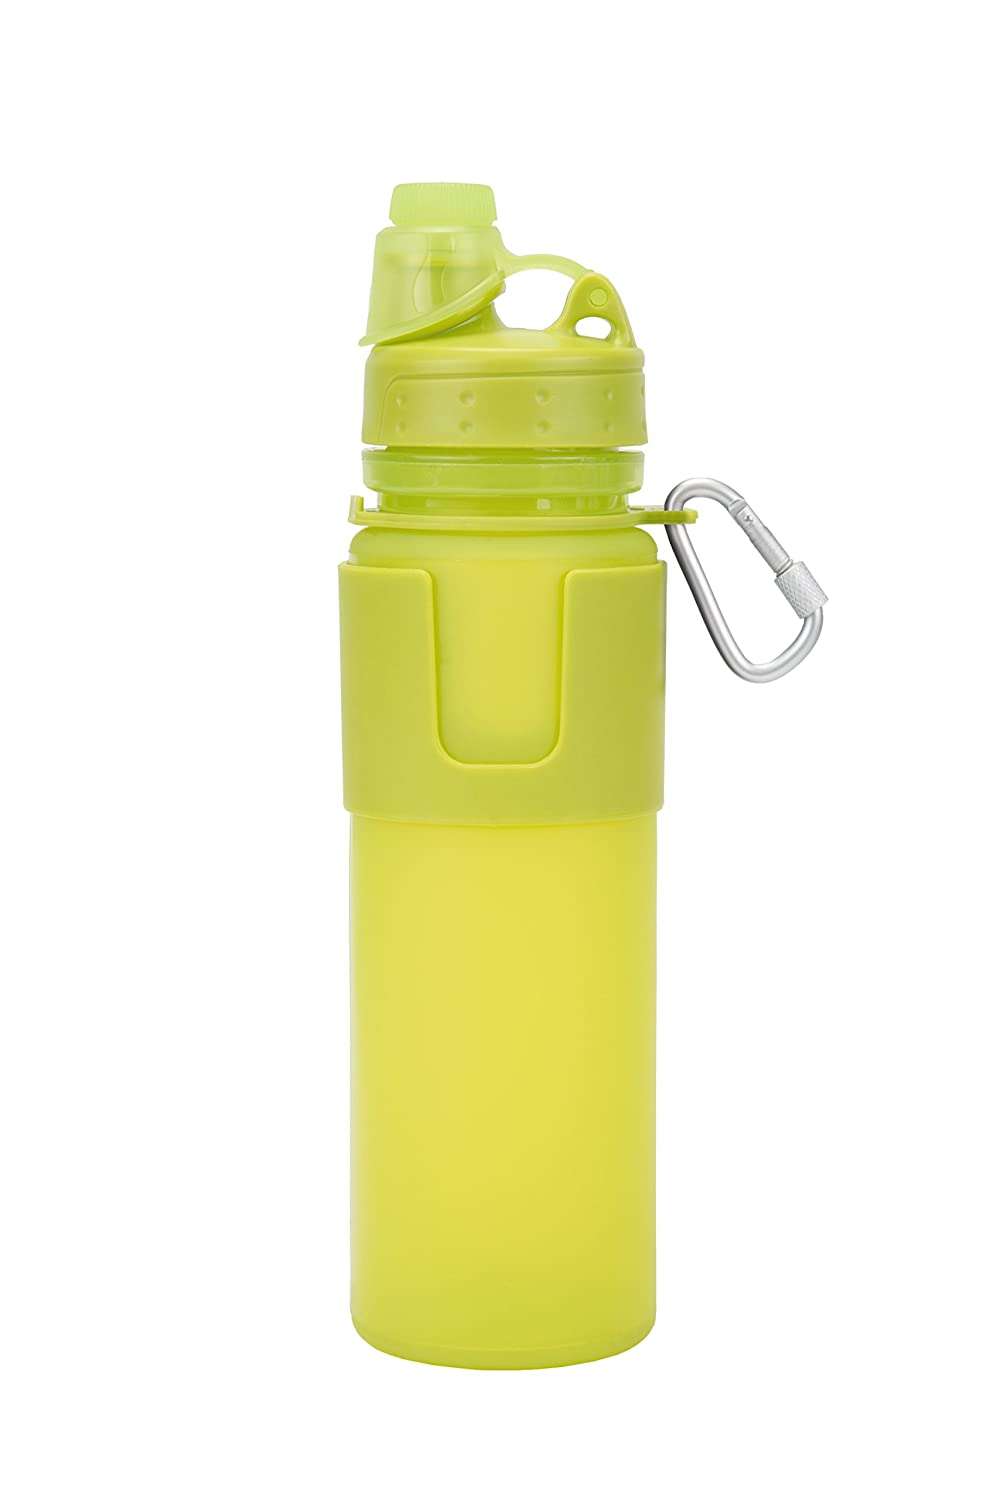 Travelon Flexible Water Bottle Travel Accessory, Lime 13049 410